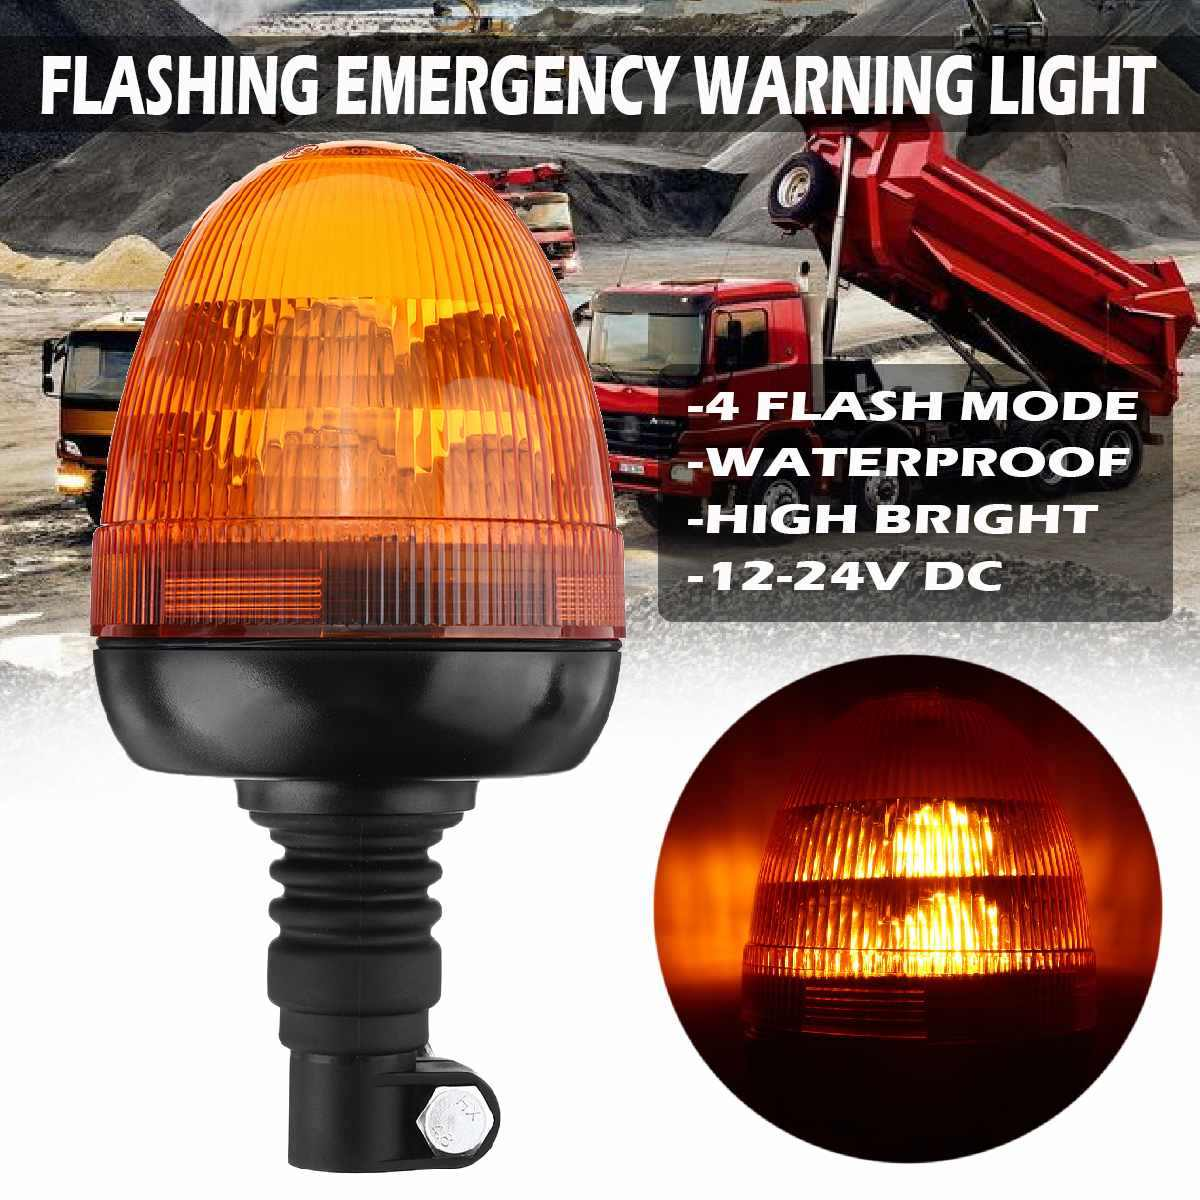 Magnet-Type Emergency Warning Lights Safety Flashing Light for School Buses